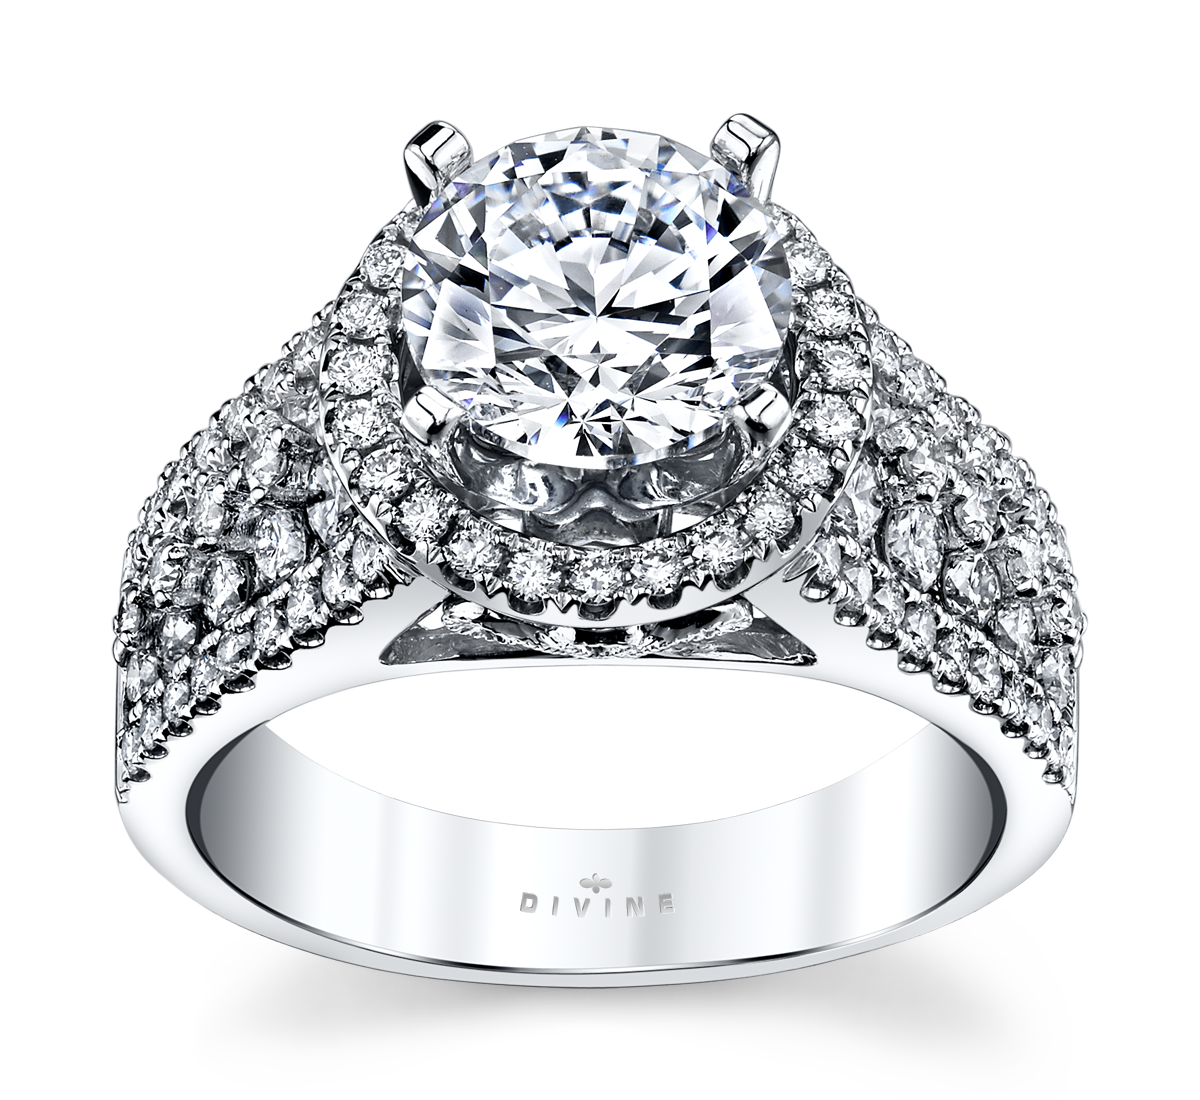 14K White Gold Diamond Engagement Ring Setting 7/8 Cttw.